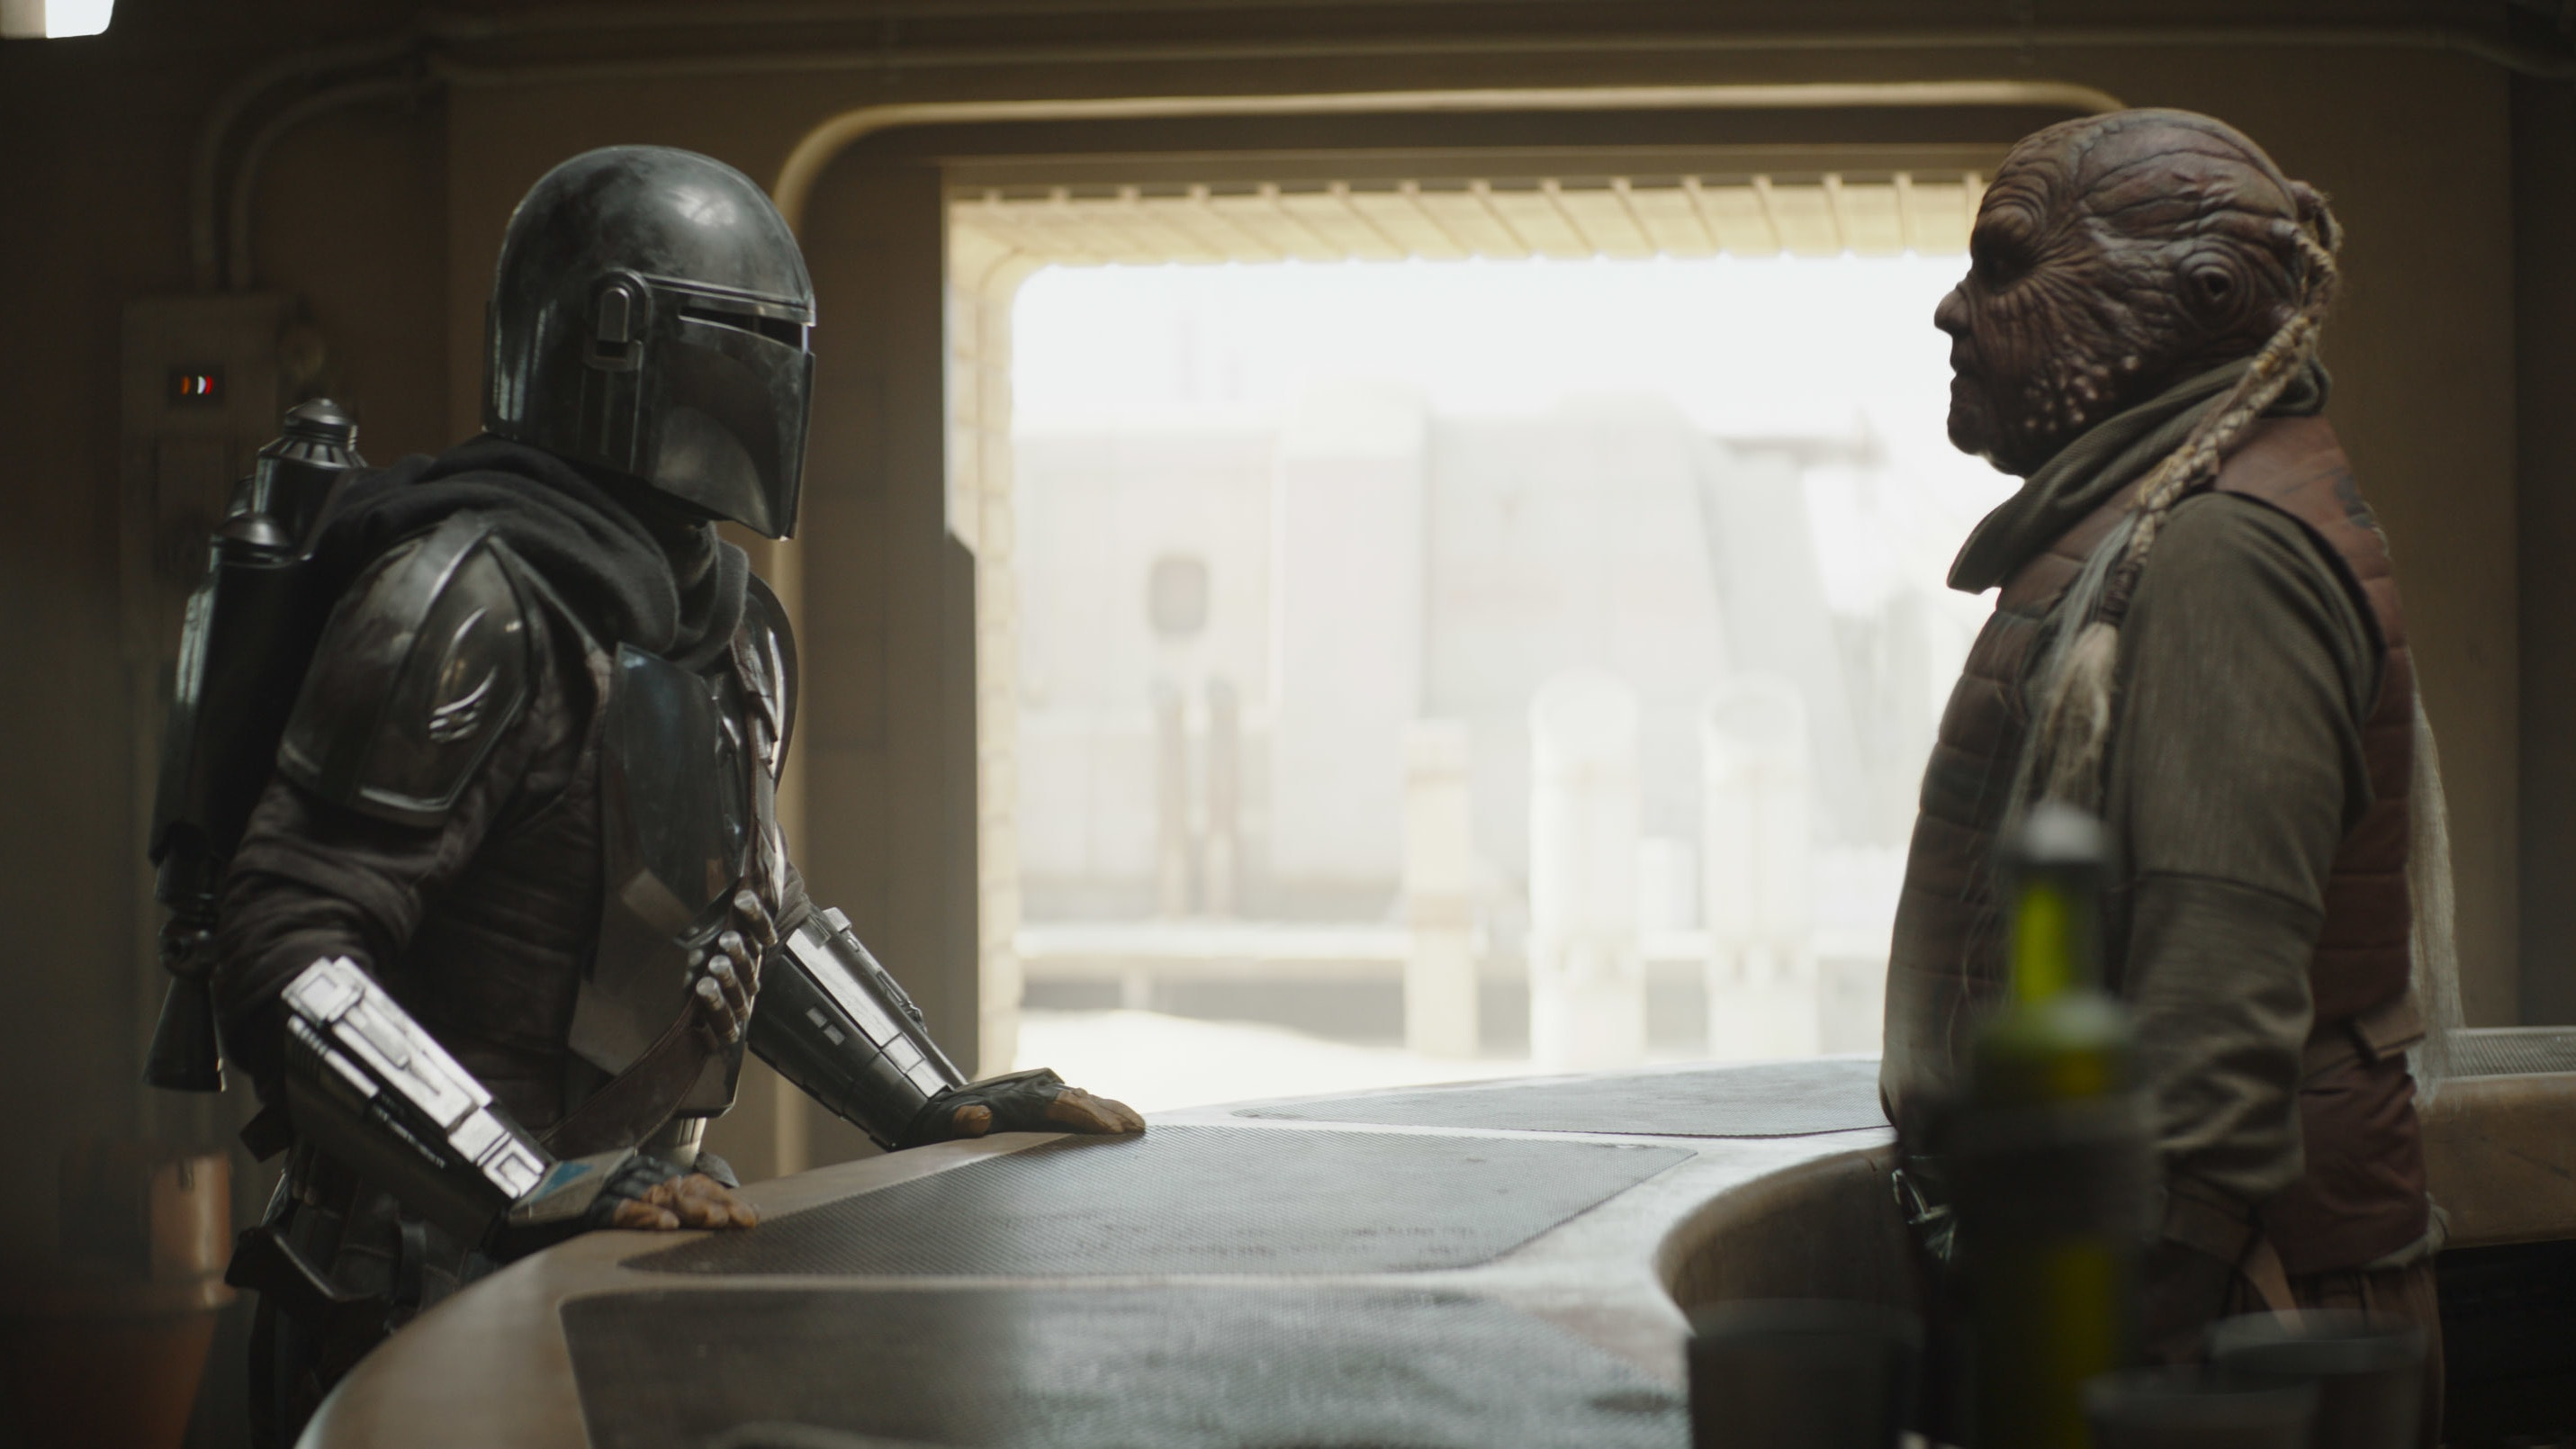 The Mandalorian (Pedro Pascal) and Weequay bartender in Lucasfilm's THE MANDALORIAN, season two, exclusively on Disney+. © 2020 Lucasfilm Ltd. & ™. All Rights Reserved.